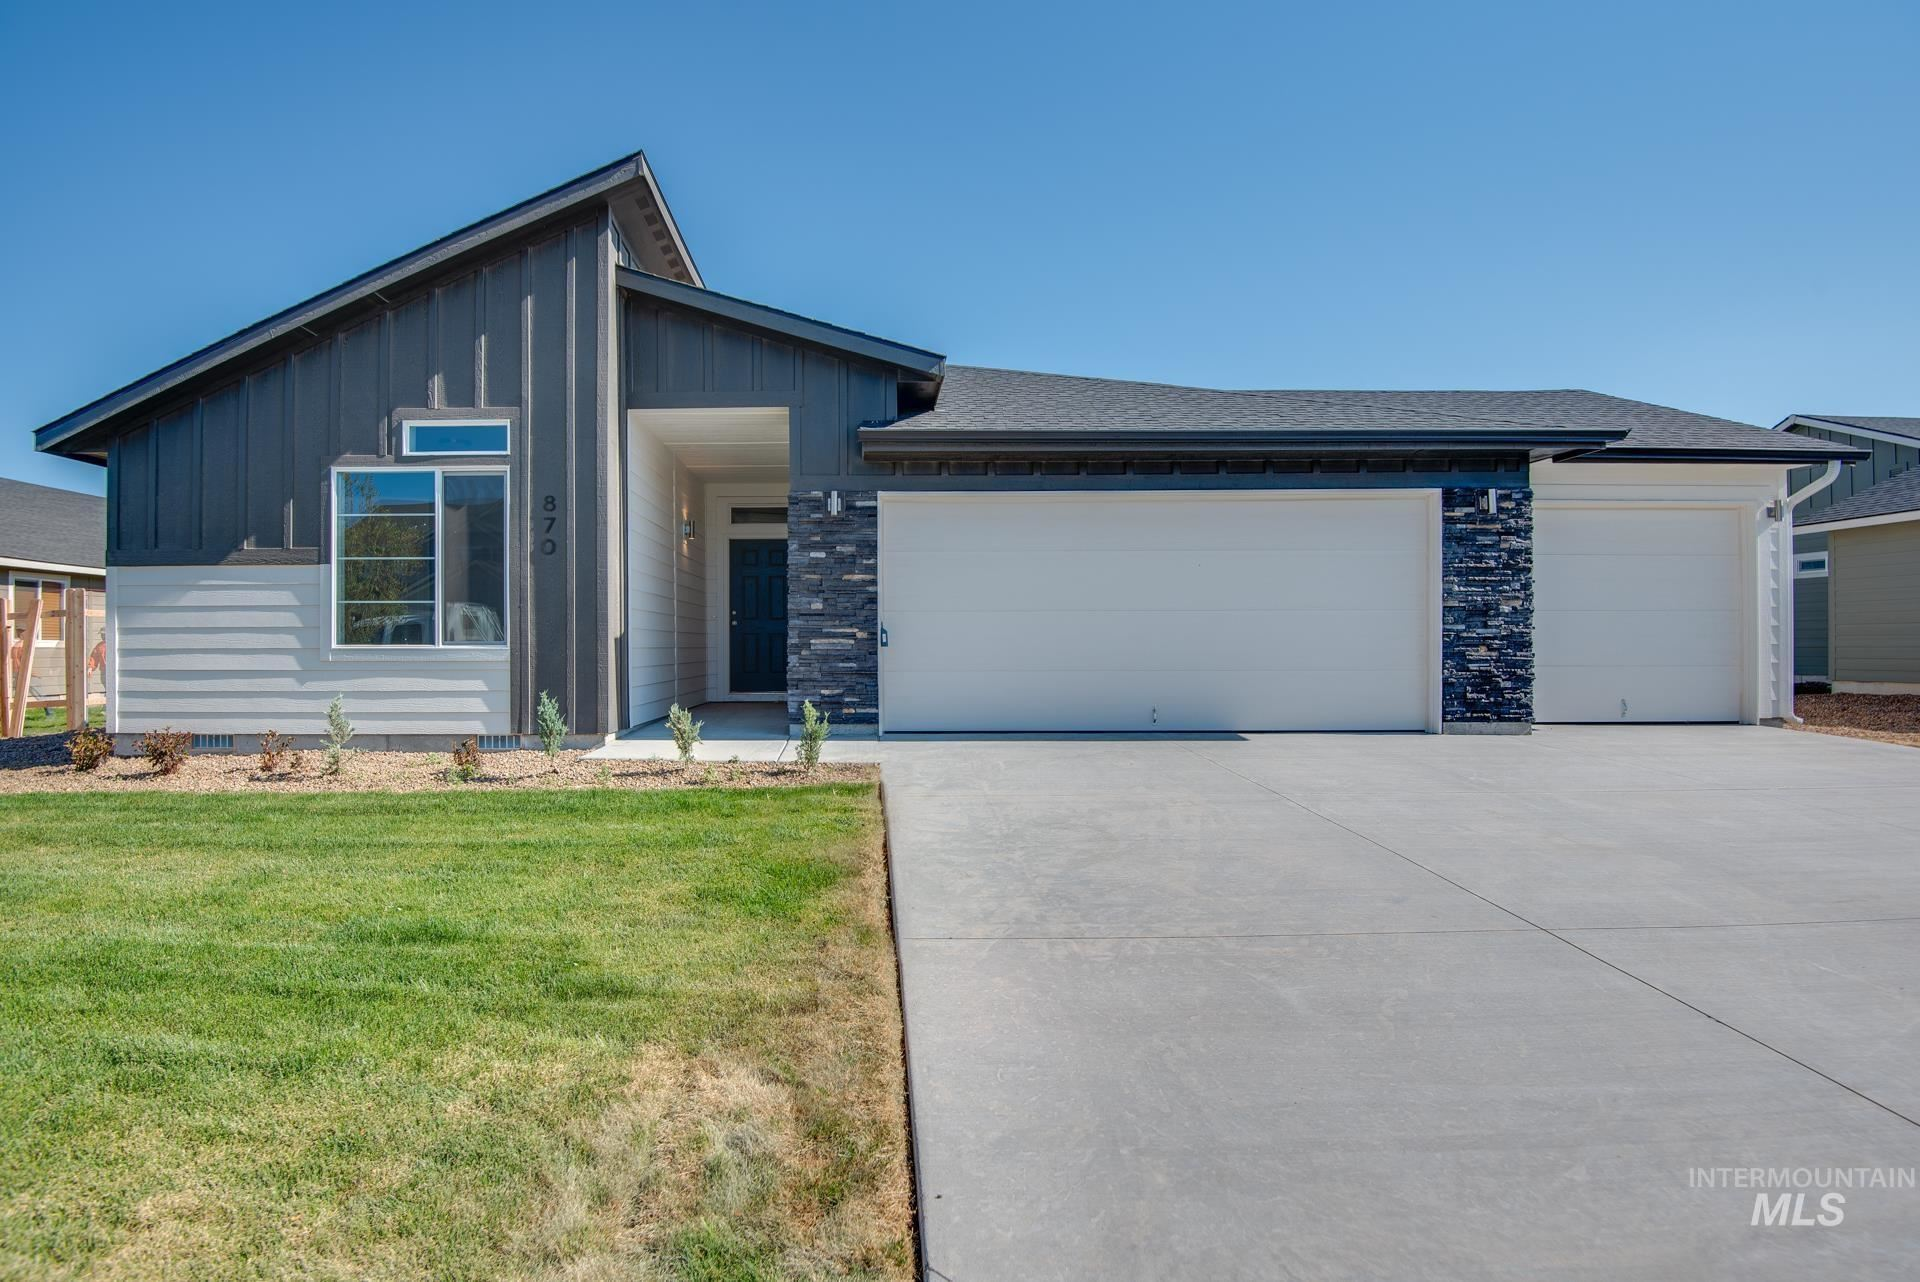 870 SW Miner St, Mountain Home, ID 83647 - MLS#: 98799850